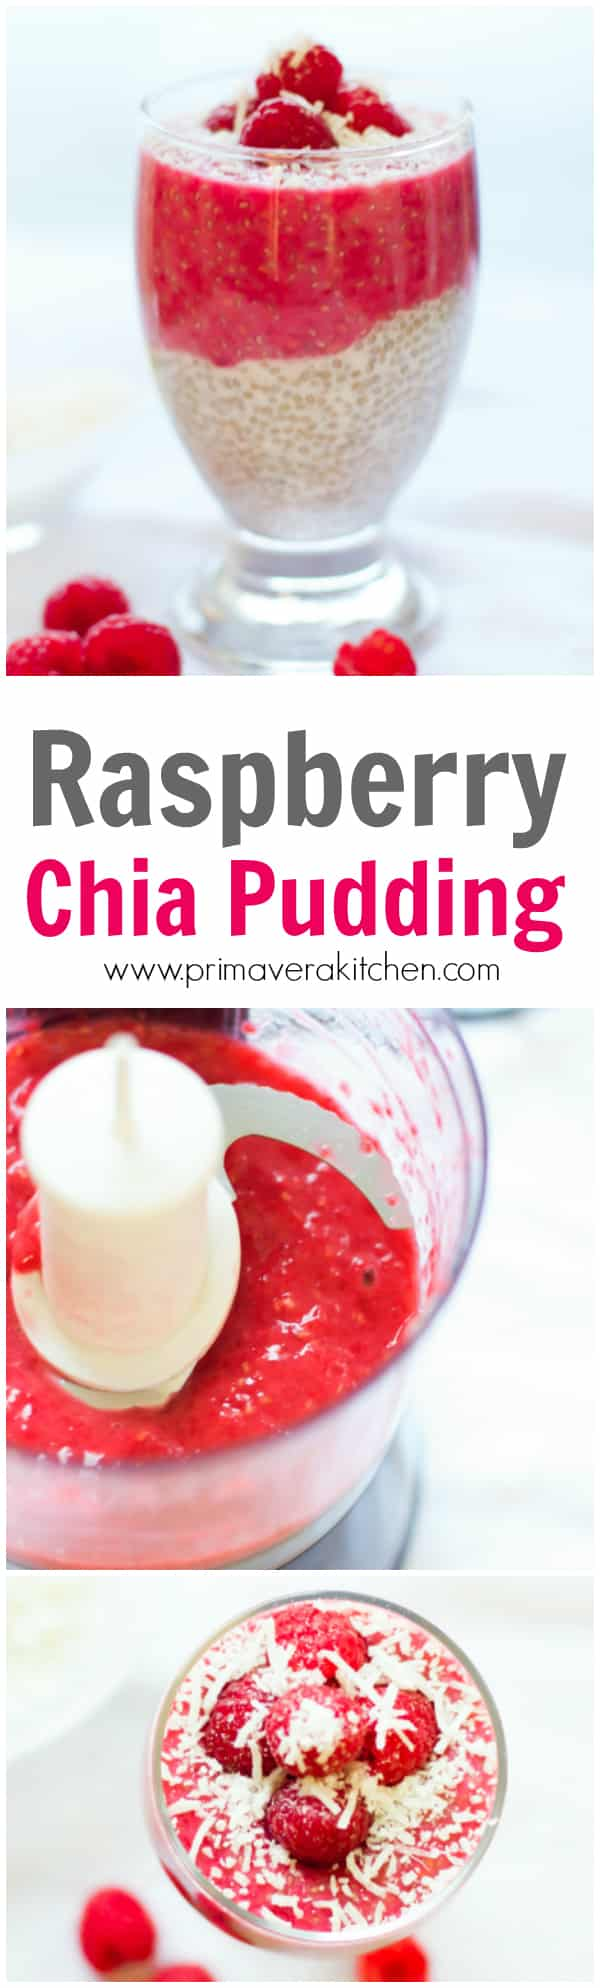 Raspberry Chia Pudding - This delicious, vegan and gluten free Raspberry Chia Pudding is a healthy breakfast recipe loaded with antioxidants, fiber, high quality protein and omega-3.